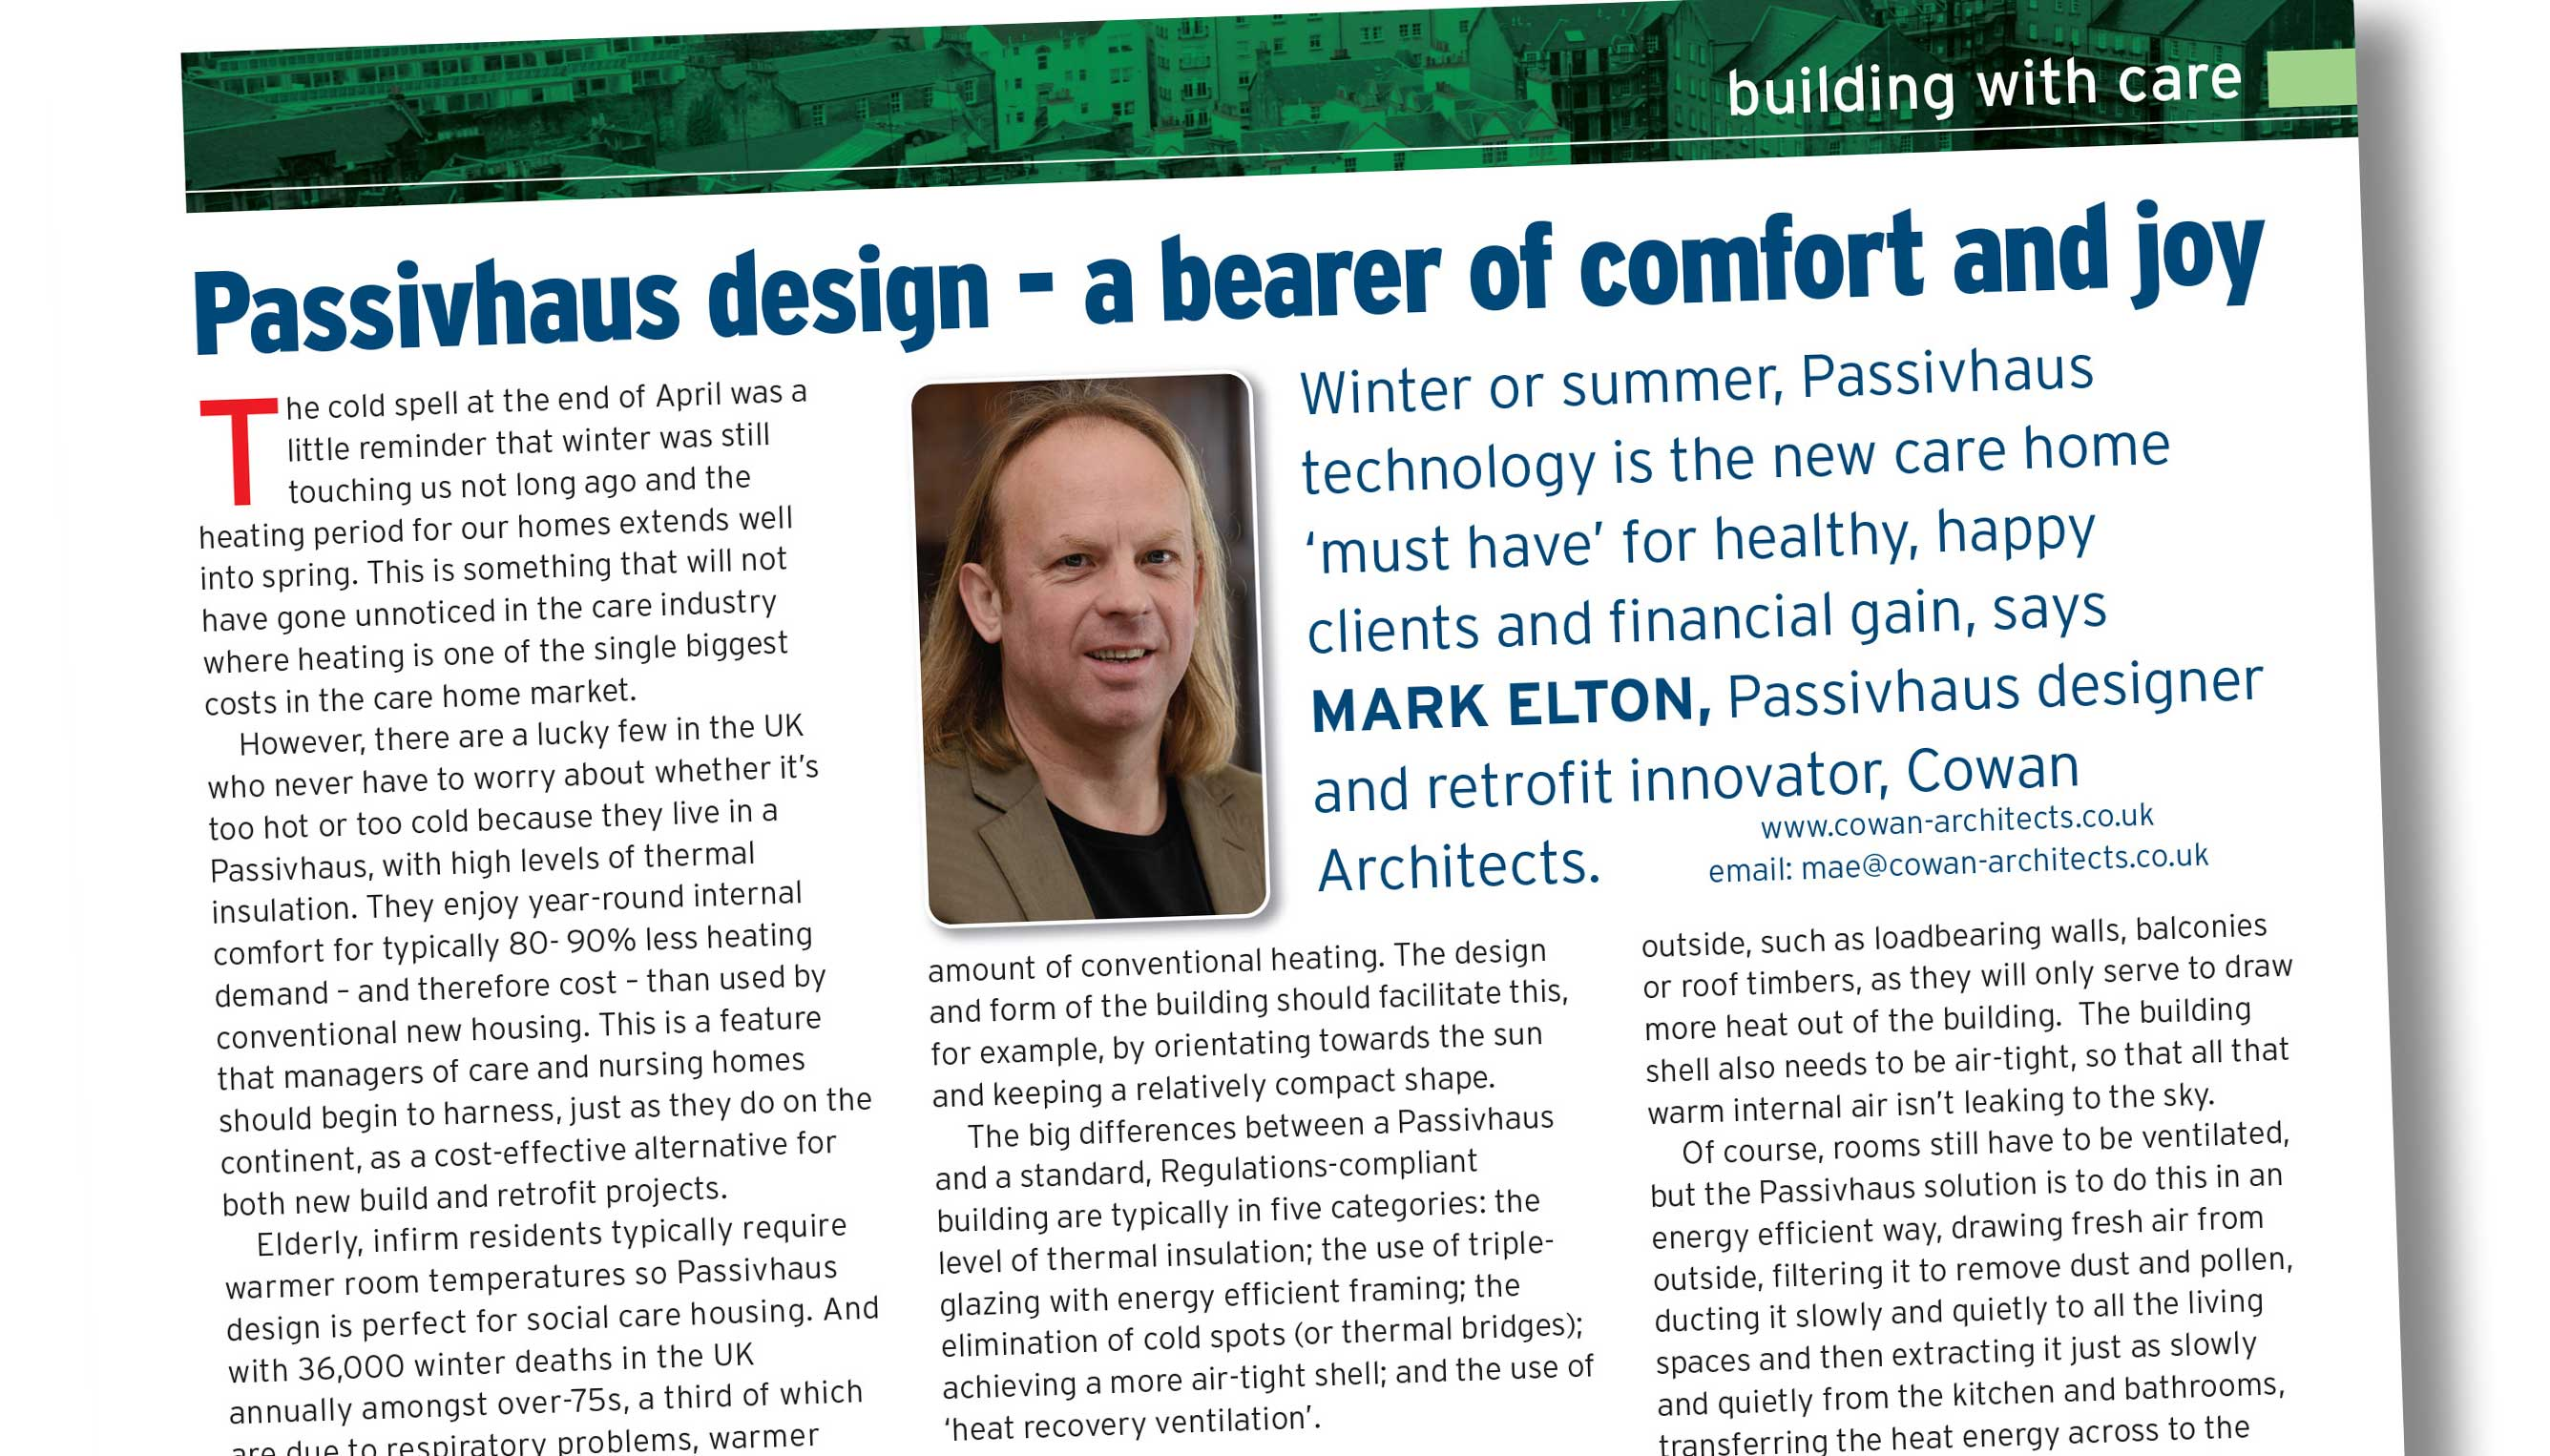 Caring Times Passivhaus Article